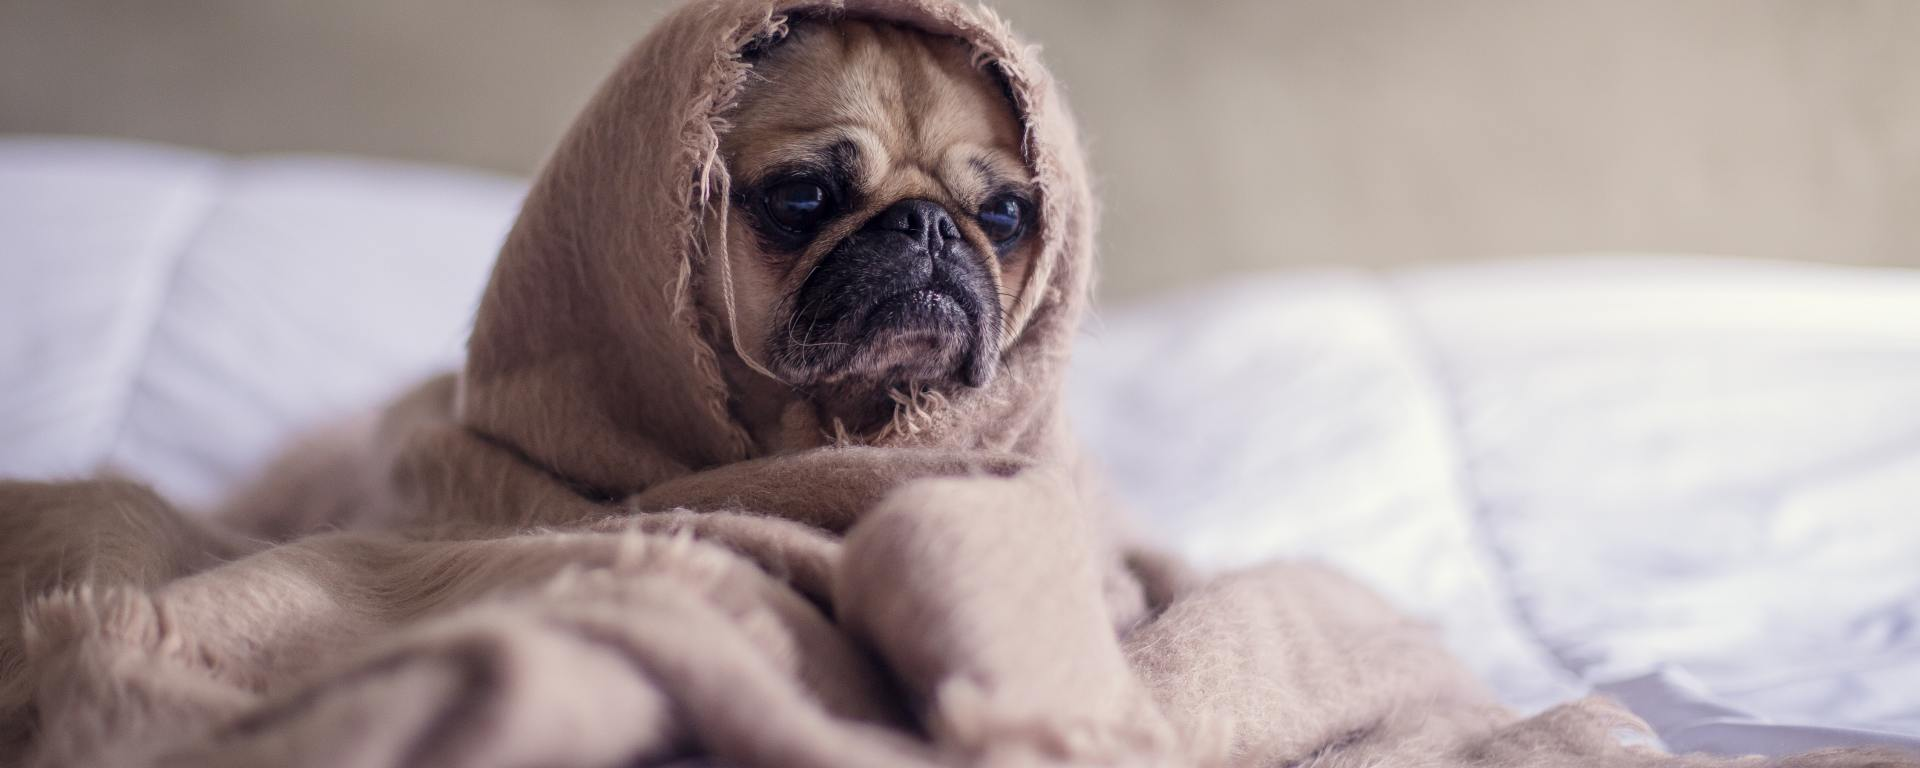 pug dog on a bed with white sheets cuddled up in a brown blanket